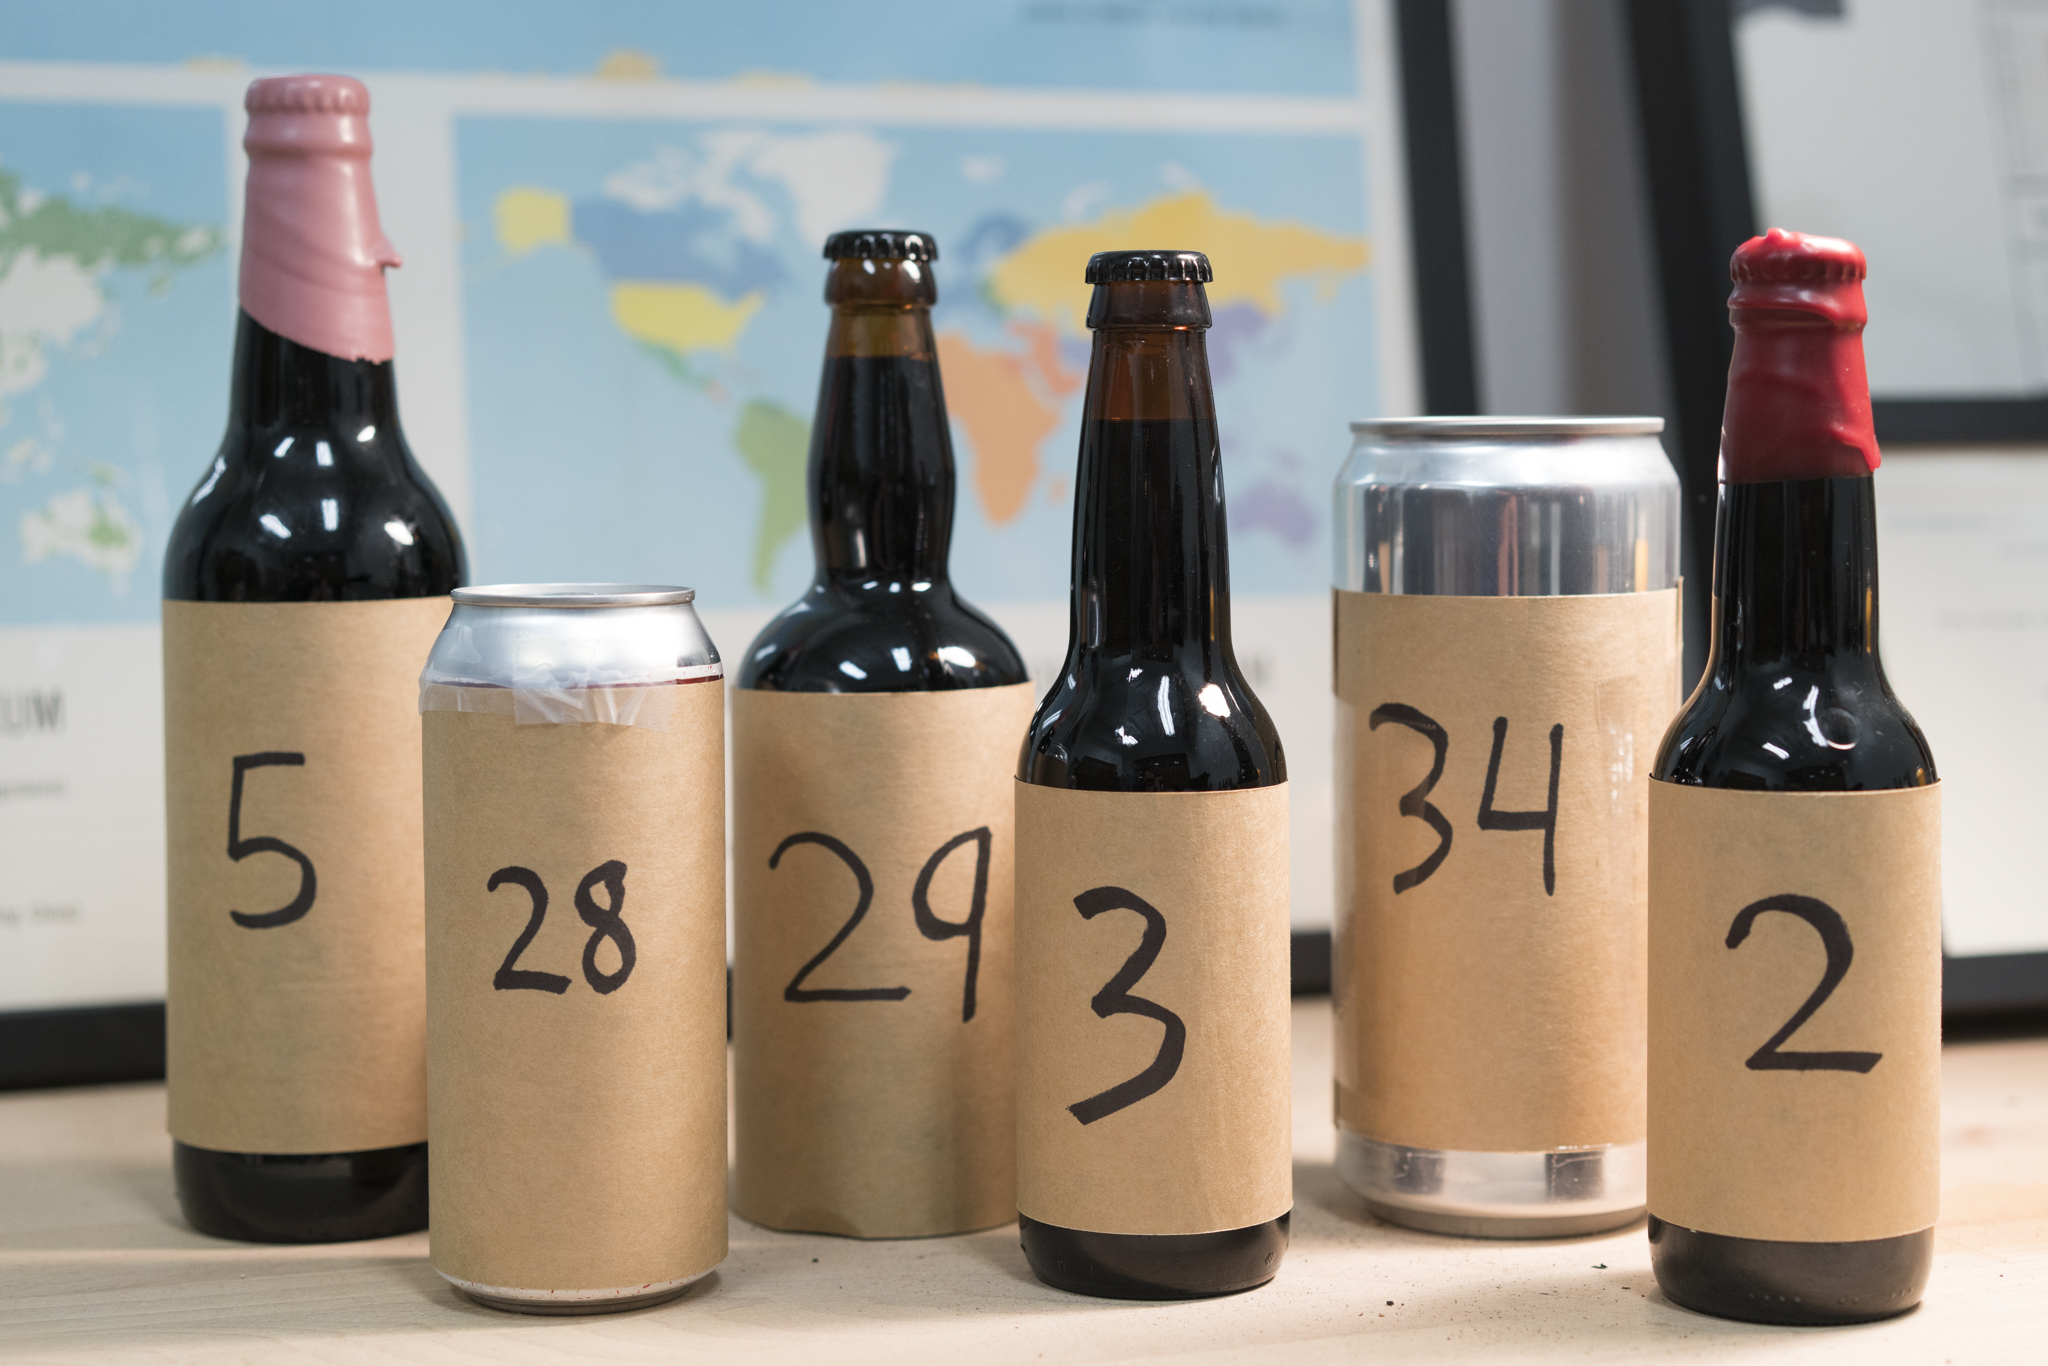 50 Chicago Stouts: Reviewed & Ranked